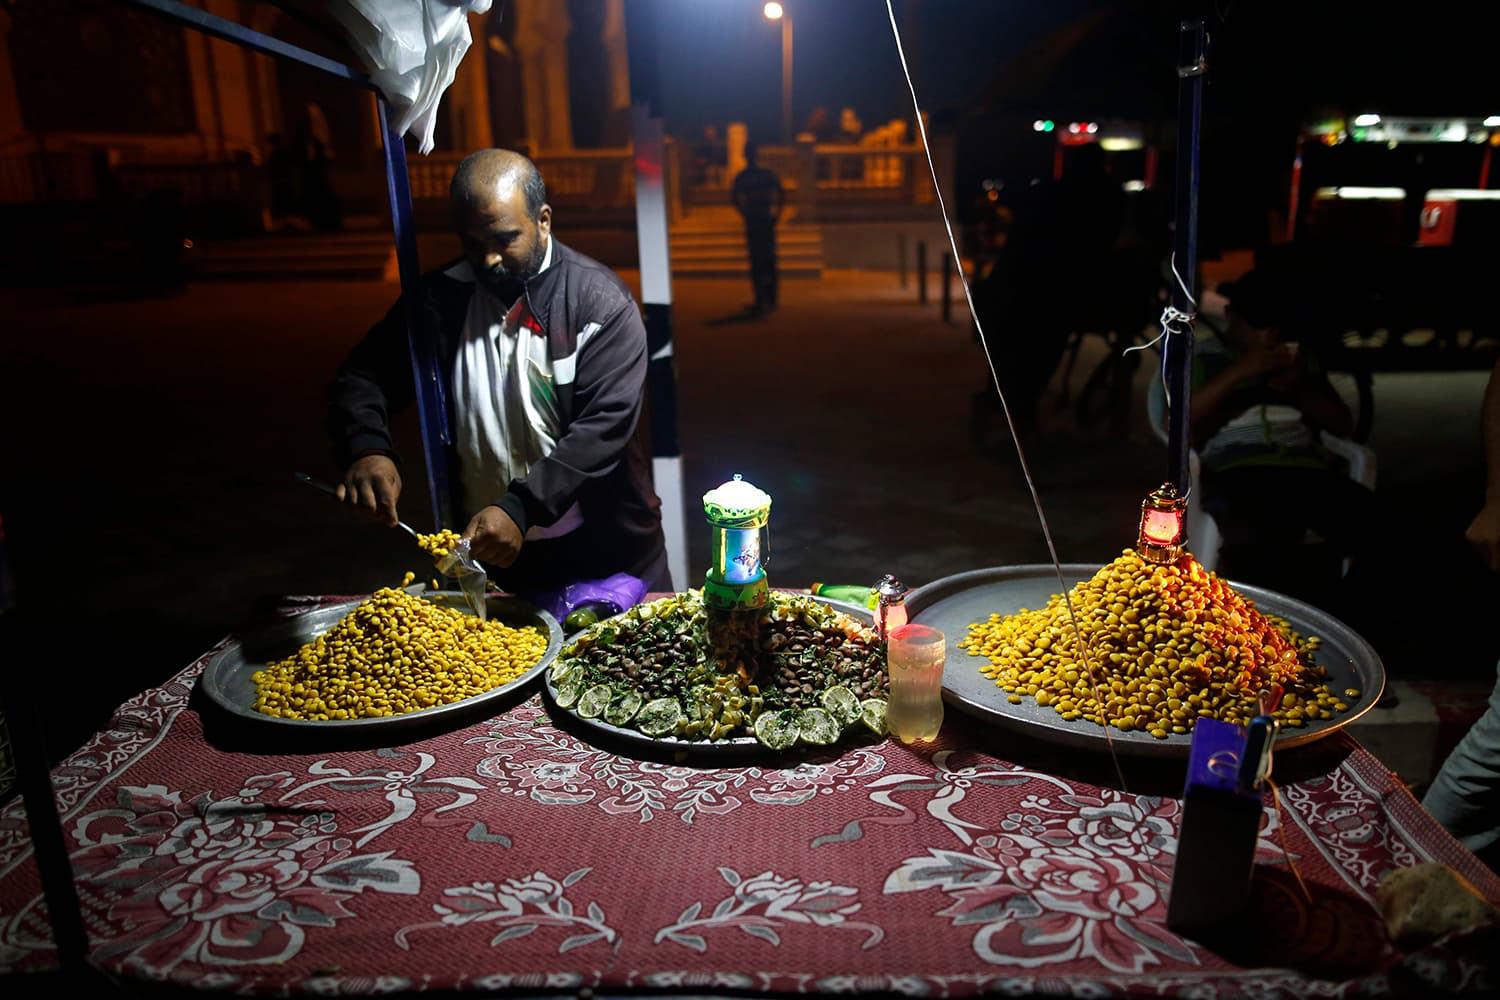 A Palestinian street vendor sells food in Gaza City on May 16. — AFP